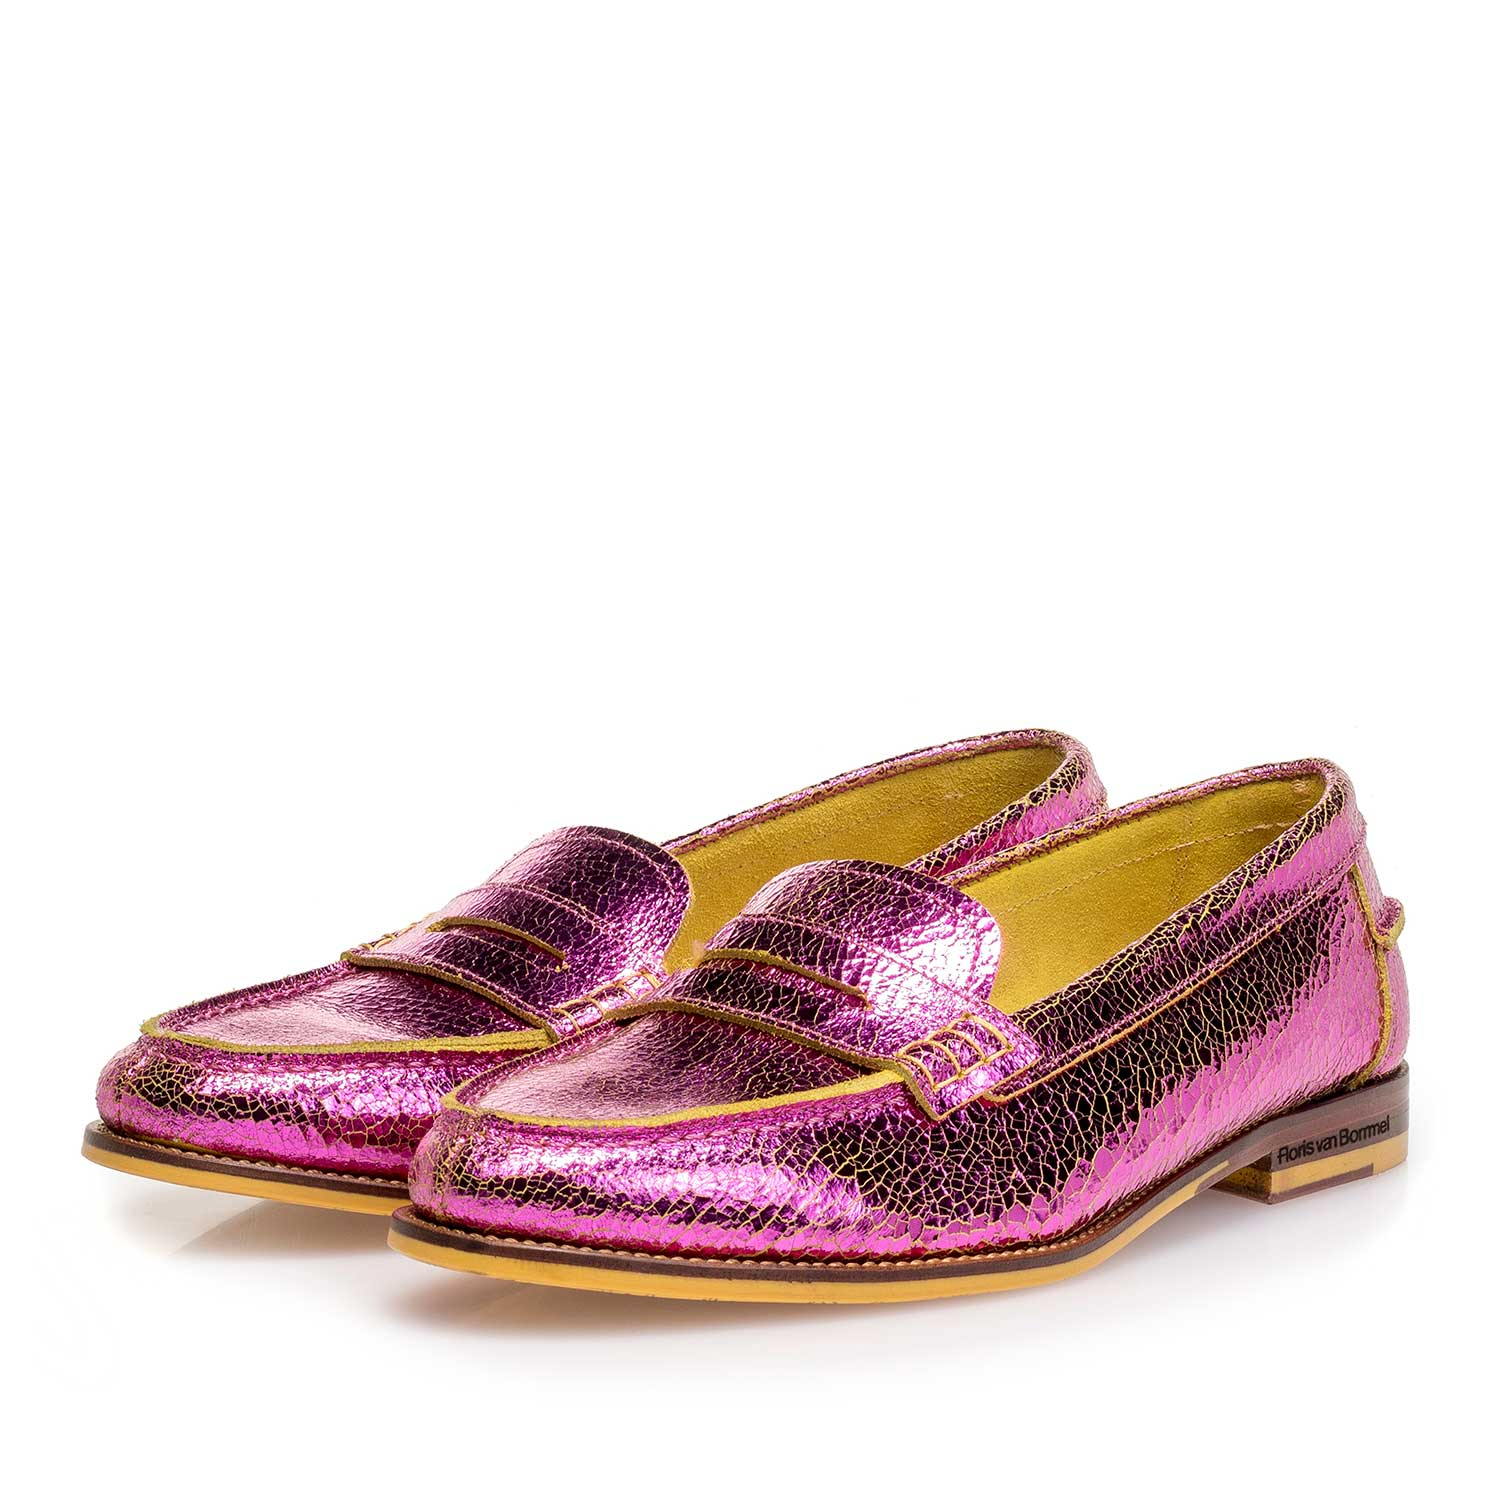 85409/10 - Pink metallic leather loafer with craquelé effect